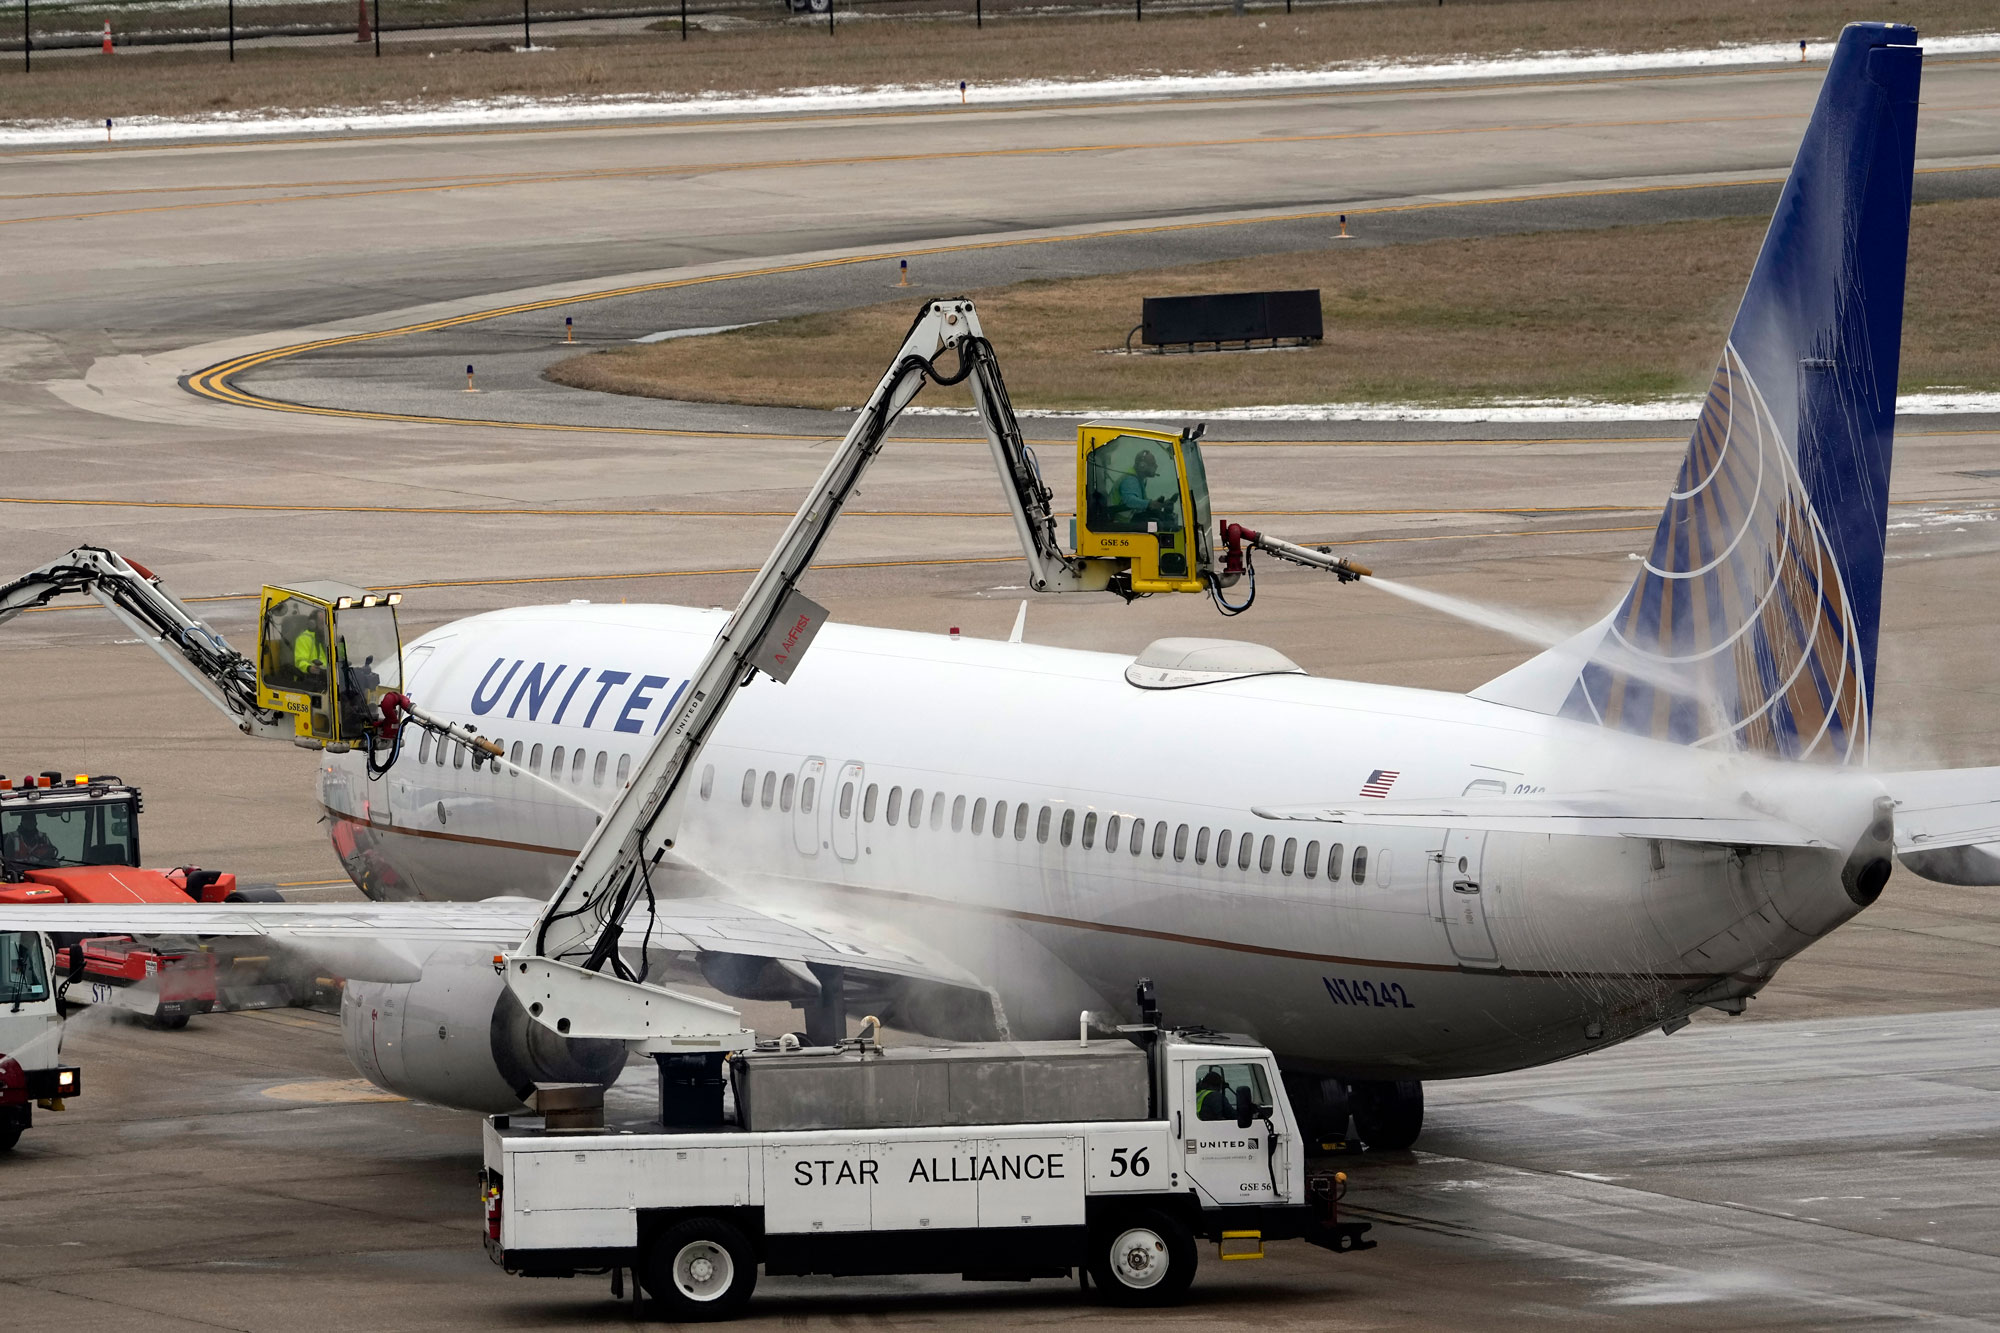 A United Airlines jet is deiced at George Bush Intercontinental Airport on February 16 in Houston, Texas.